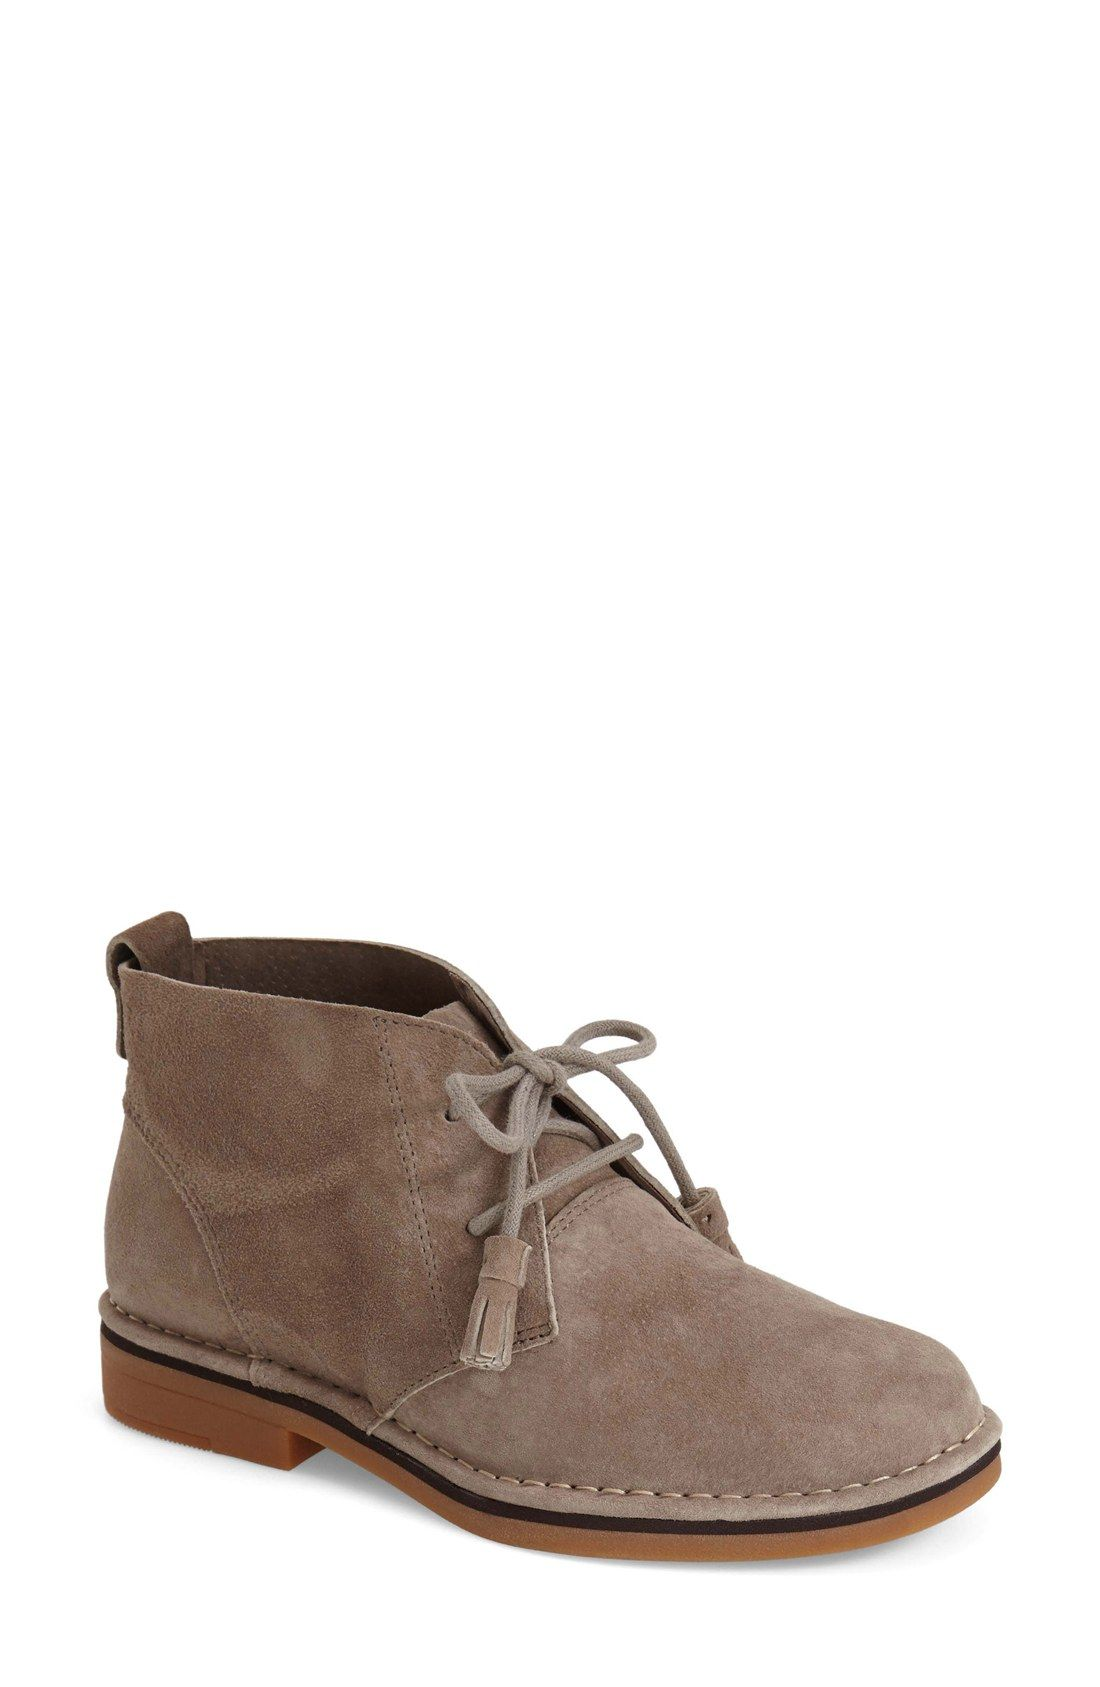 Hush Puppies Cyra Catelyn Chukka Bootie Women Nordstrom Chukka Boots Women Hush Puppies Shoes Chukka Boots